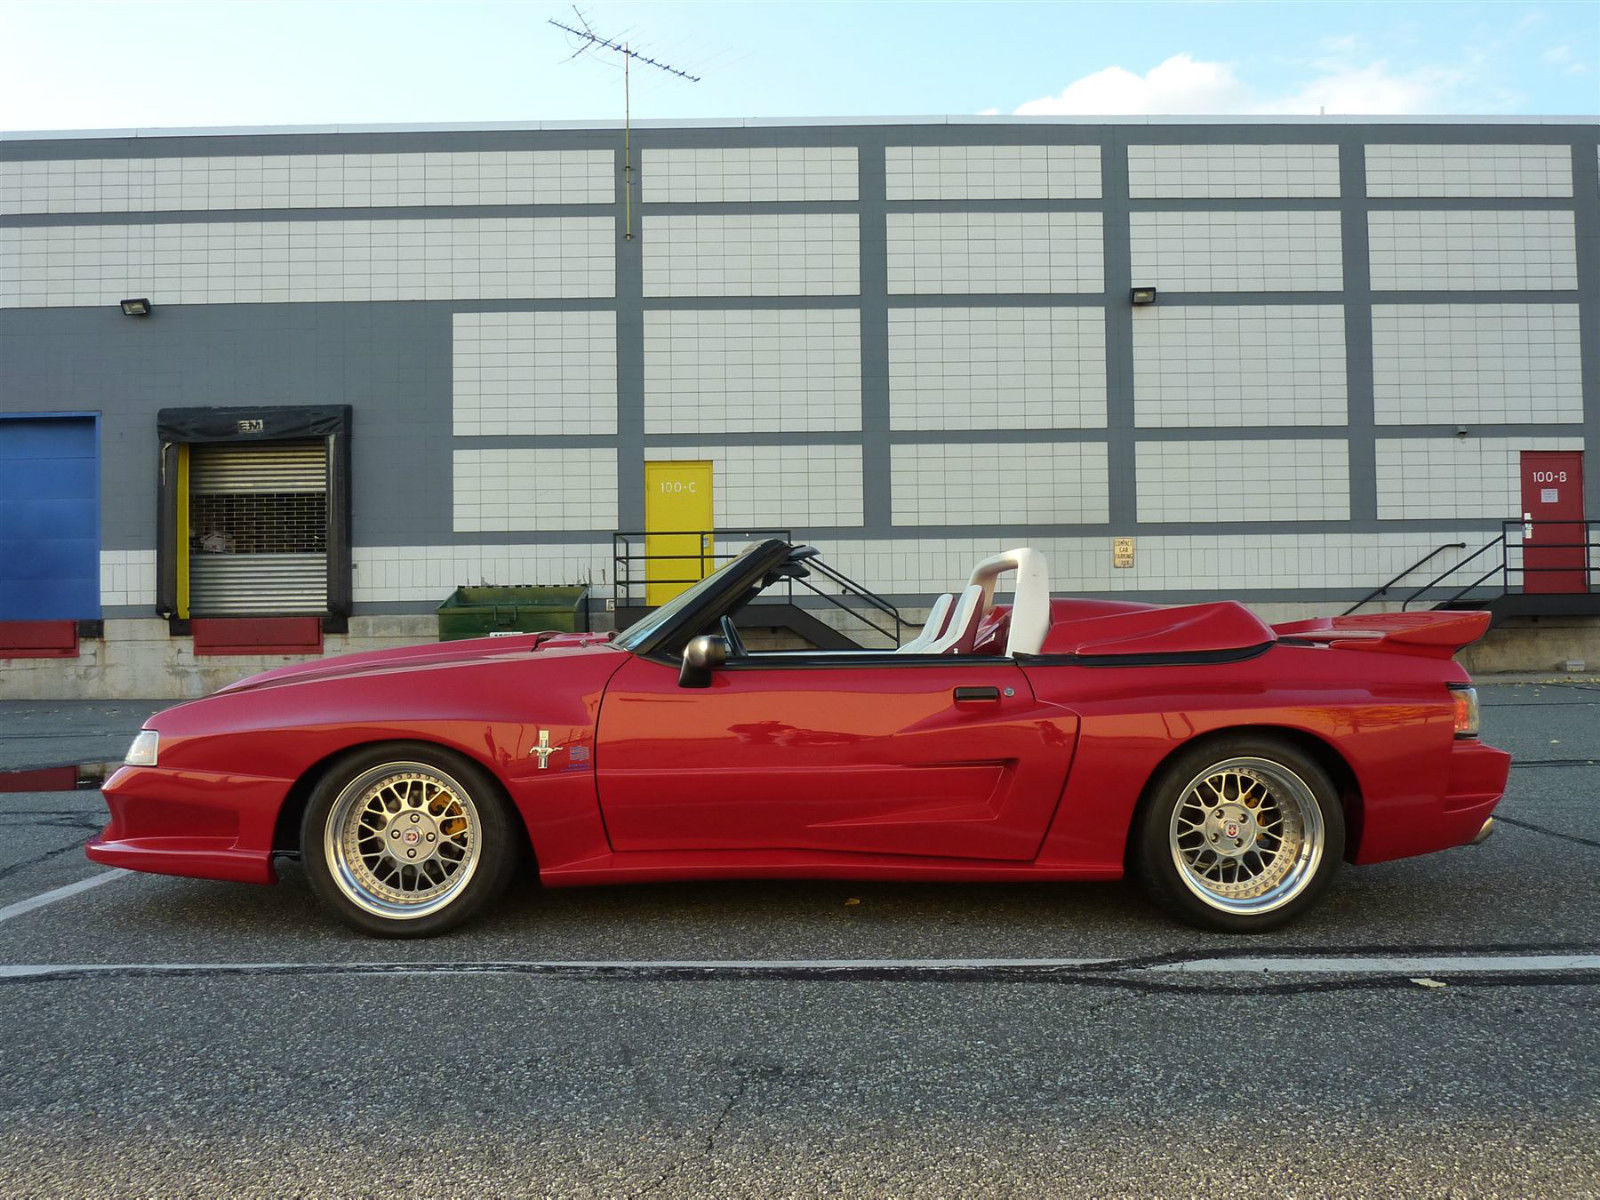 1989 Ford Mustang Gt Convertible Widebody Supercharged